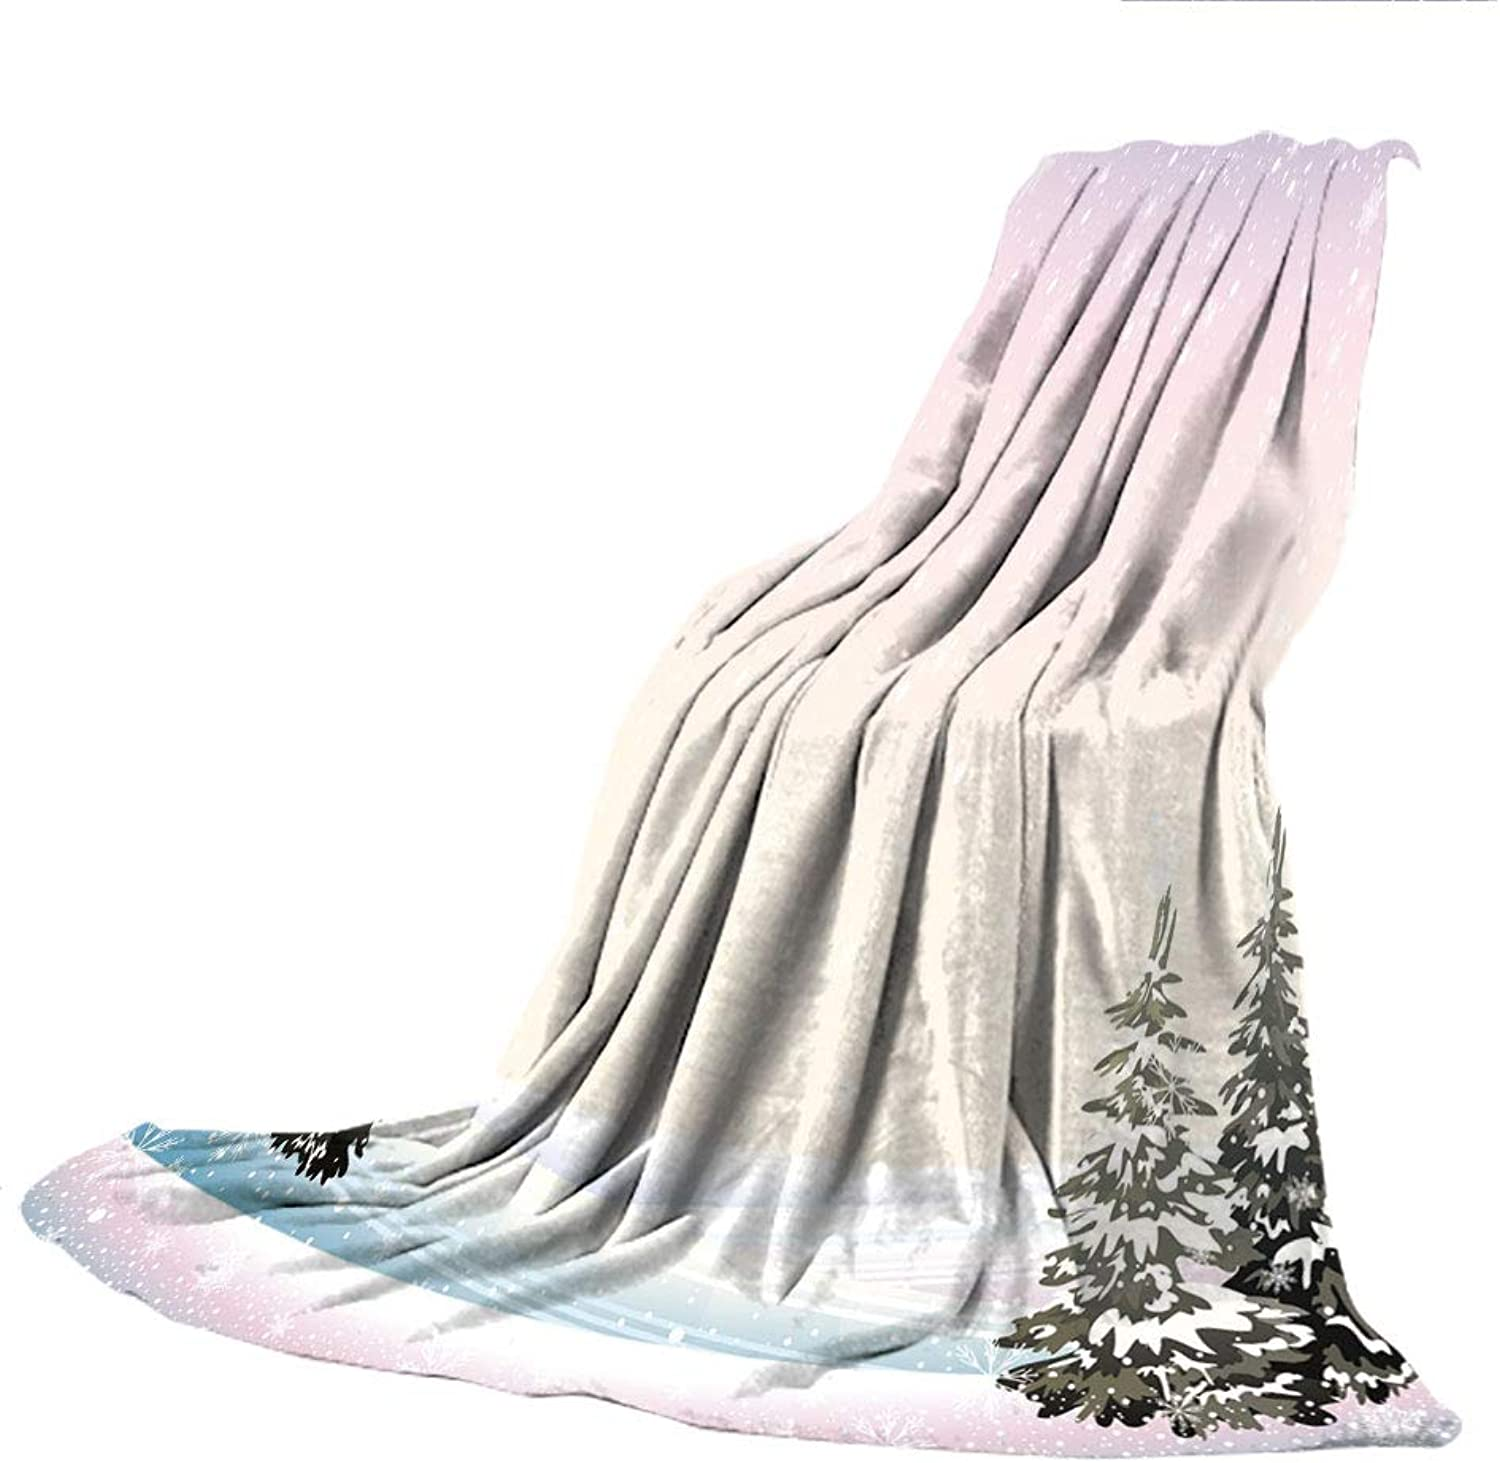 SCOCICI SuperThick Flannel Warm Sofa or Bed Blanket,Winter,Snowfall in The Forrest Pine Trees Northern Hemisphere December Frozen Temperatures Decorative,39.37  W x 59.06  H